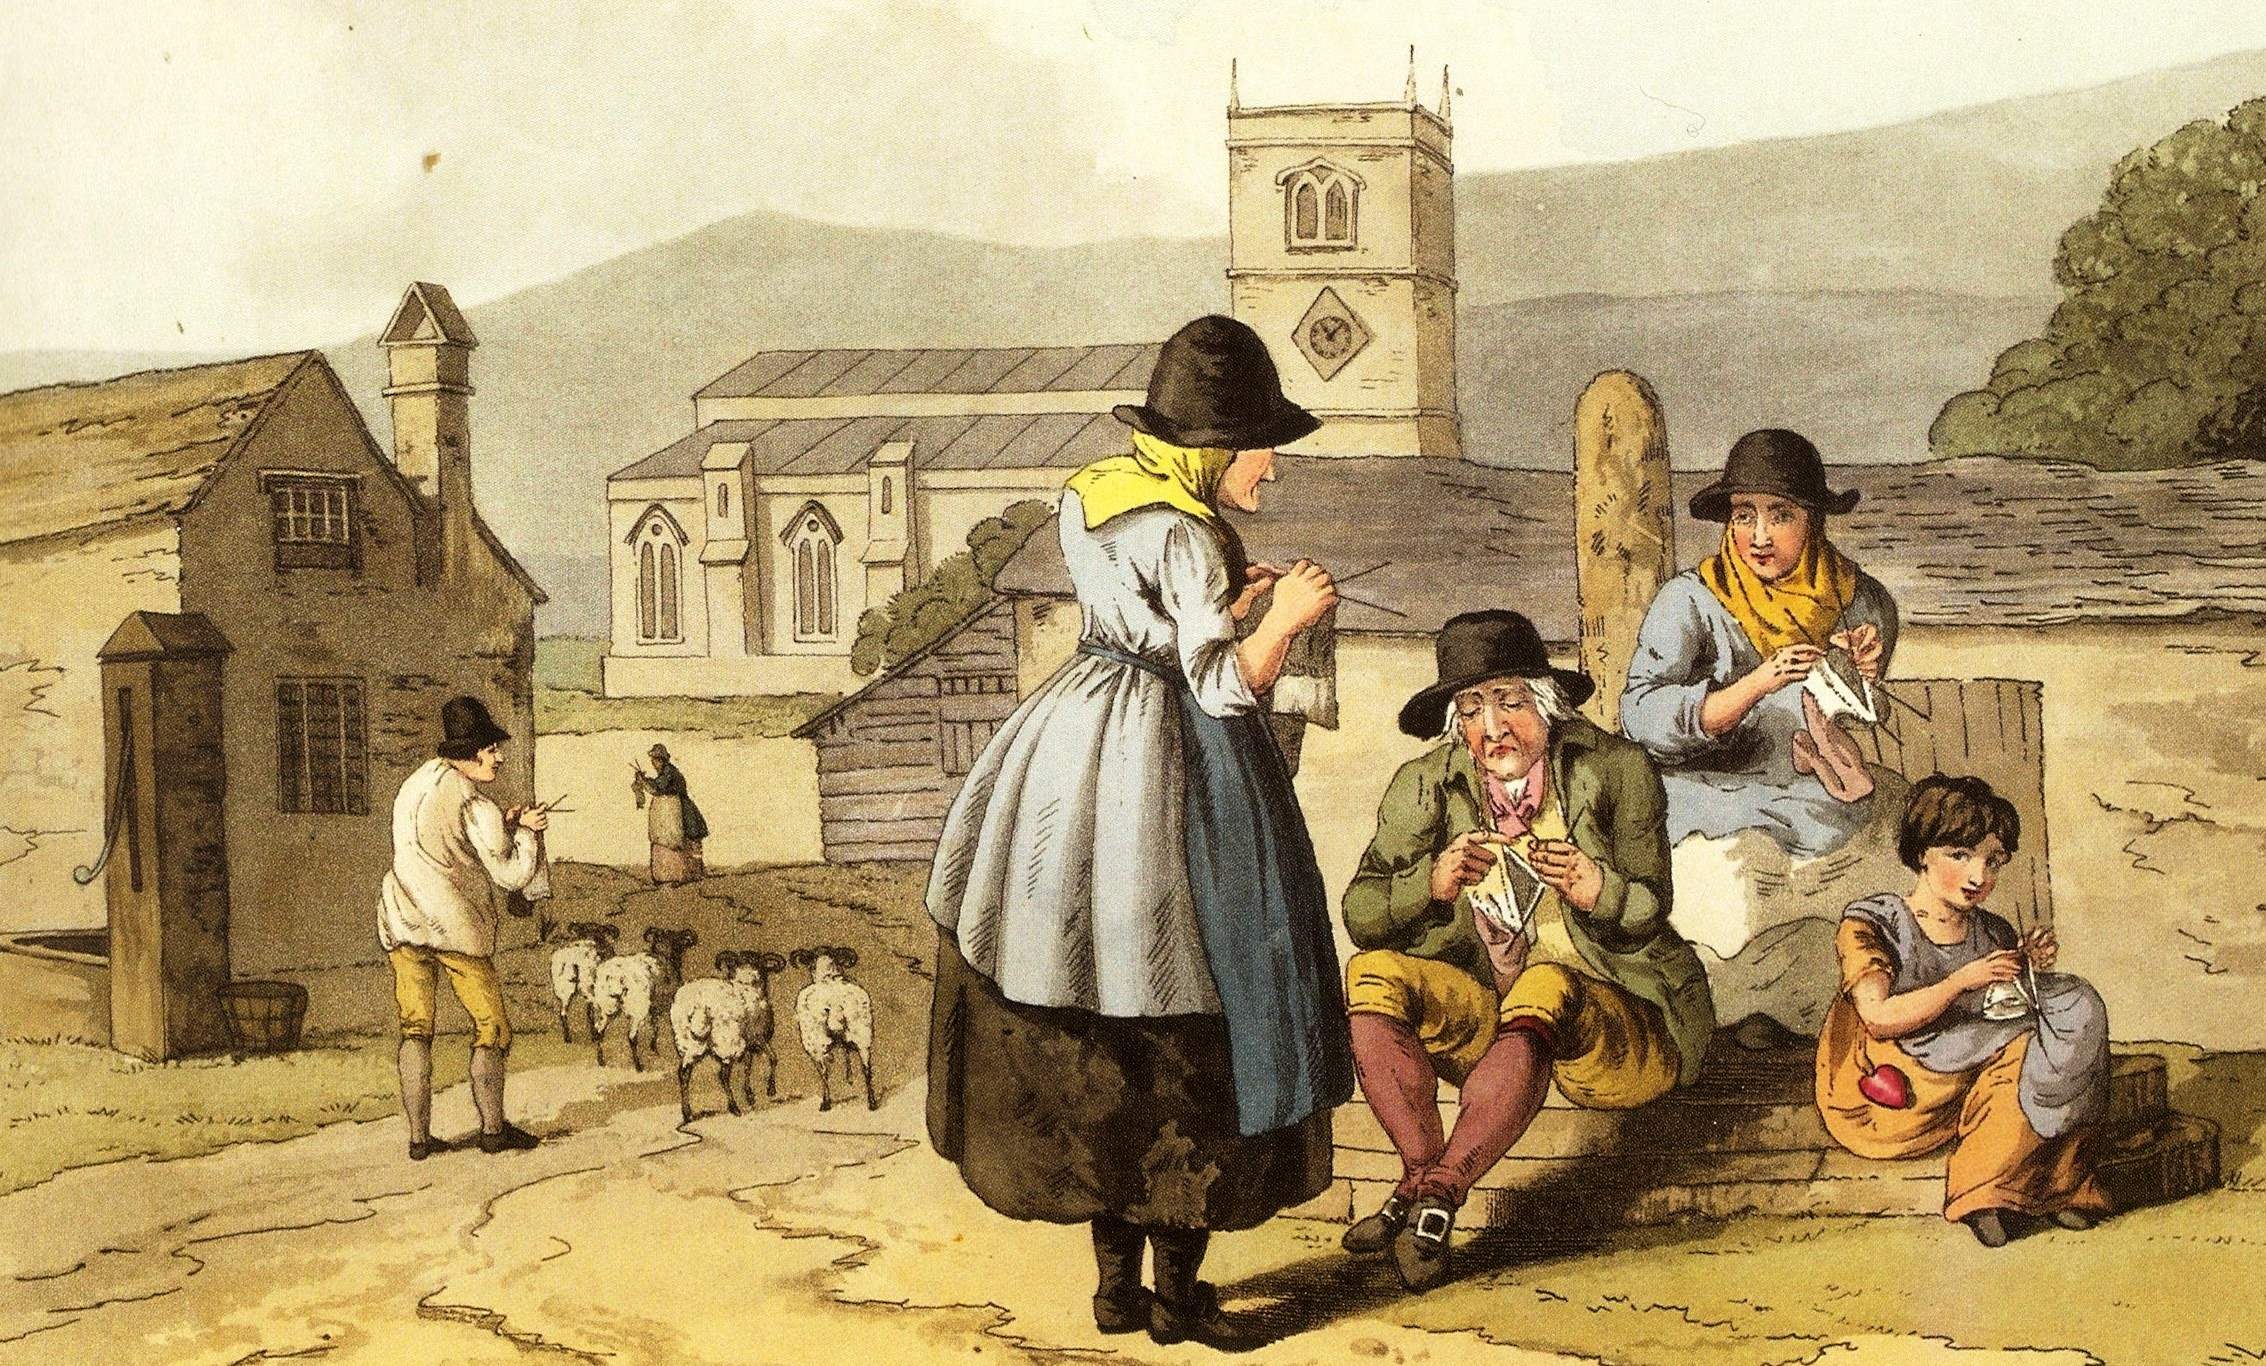 The women, men and children of some communities all knitted whenever they could, as seen in The Costume of Yorkshire by George Walker, 1814.